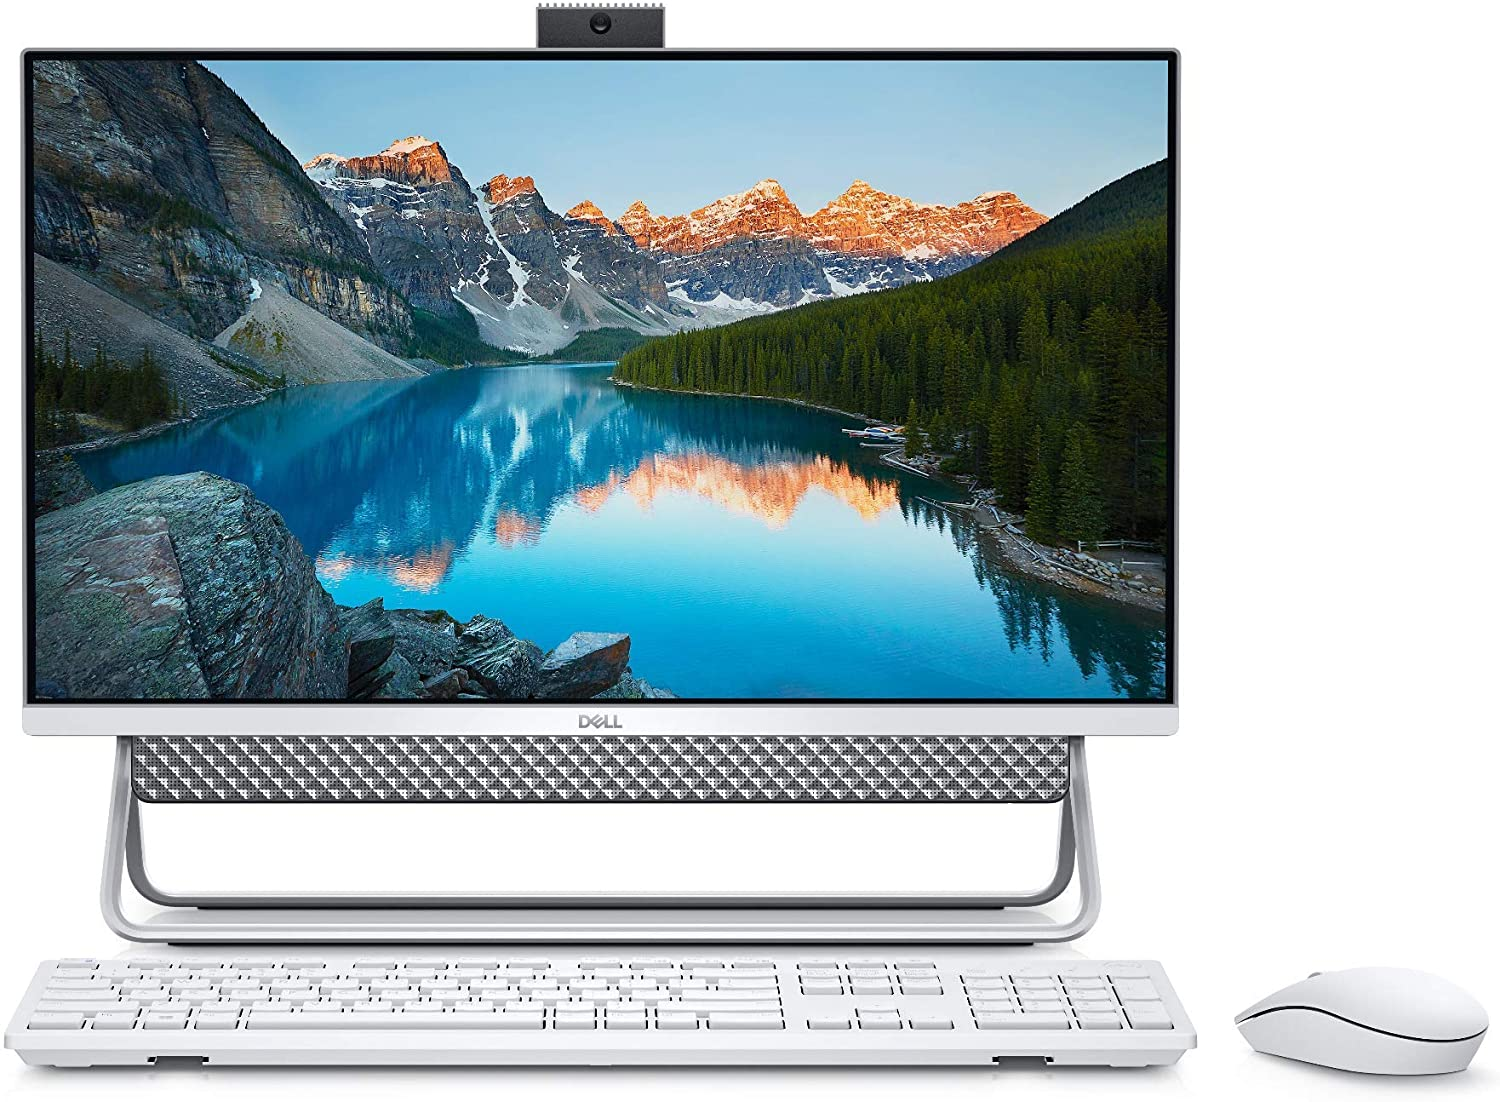 Dell Inspiron 5400 AIO All in One PC, 23.8